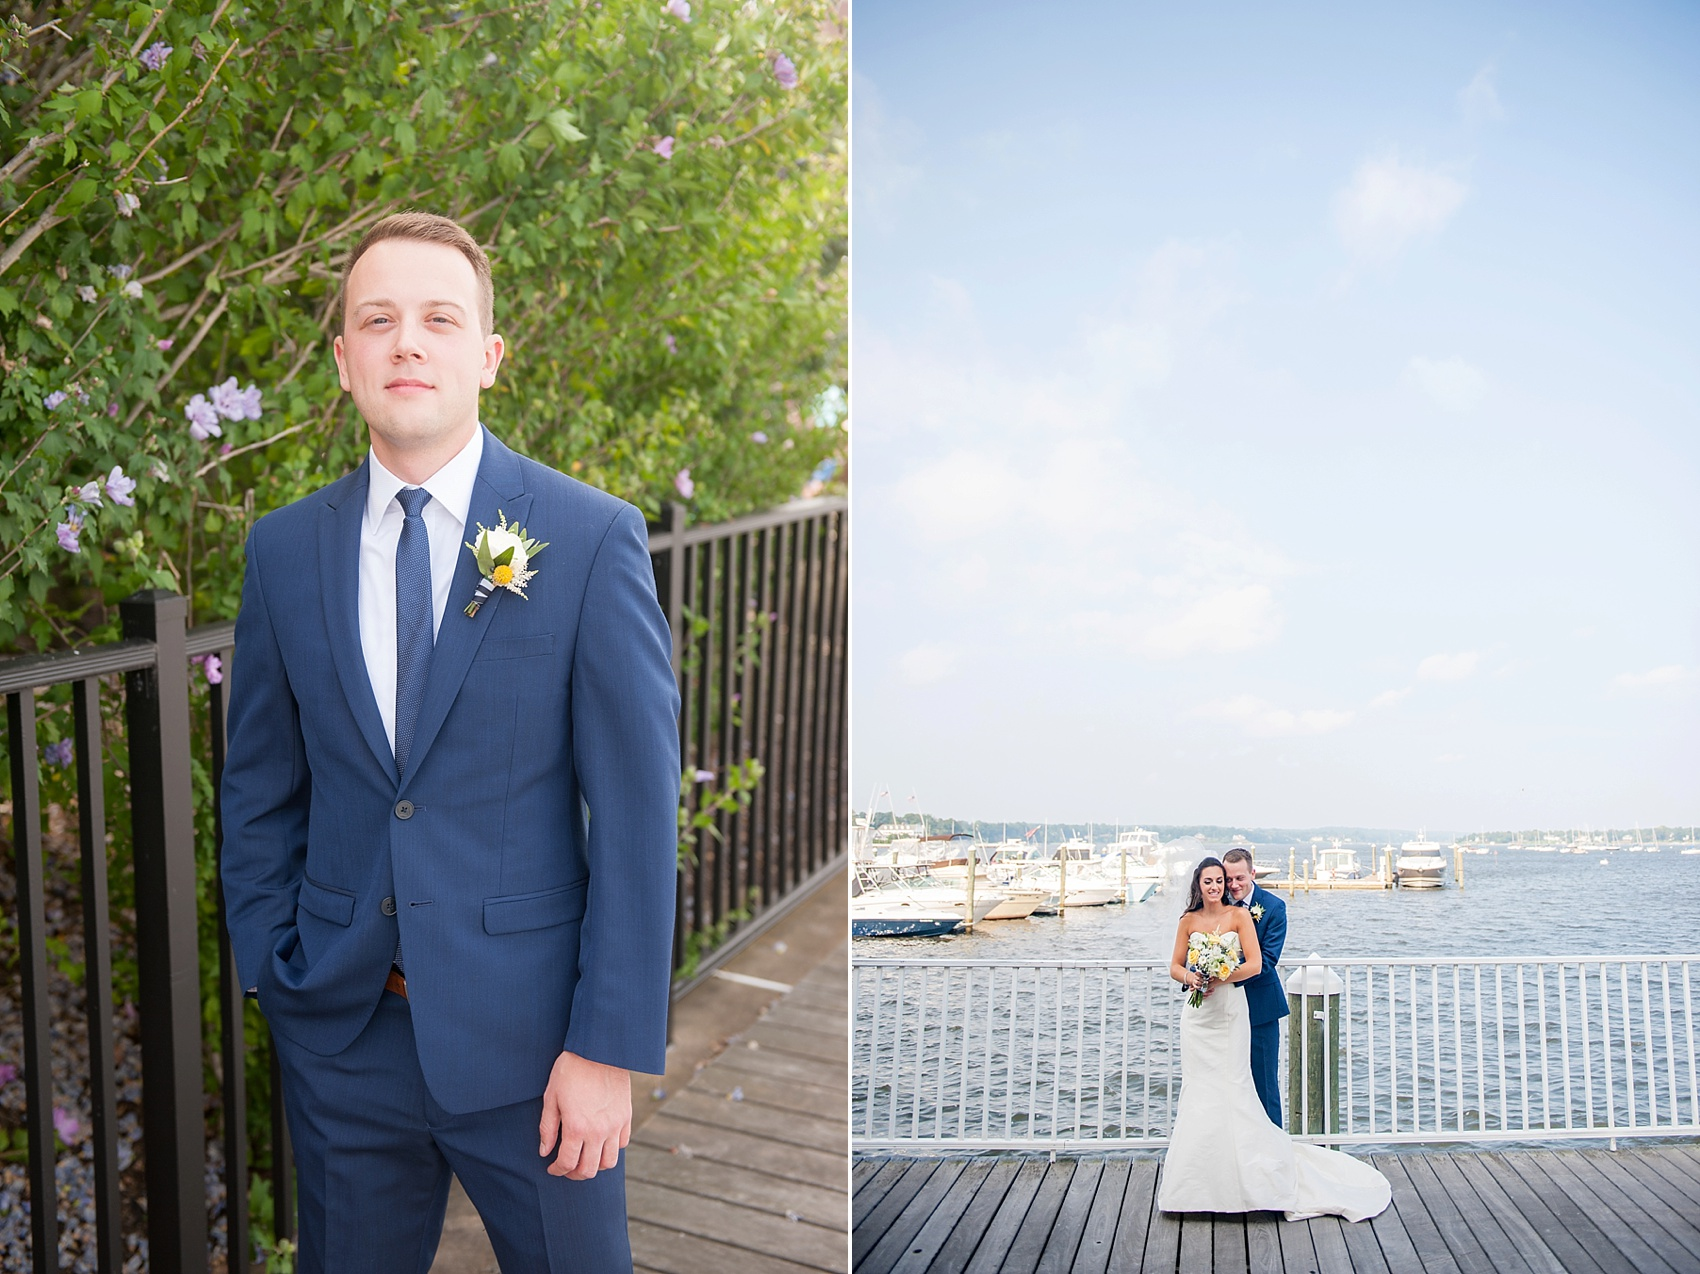 Bride and groom on the waterfront in New Jersey for this nautical wedding at the Molly Pitcher Inn. Photo by Mikkel Paige Photography.